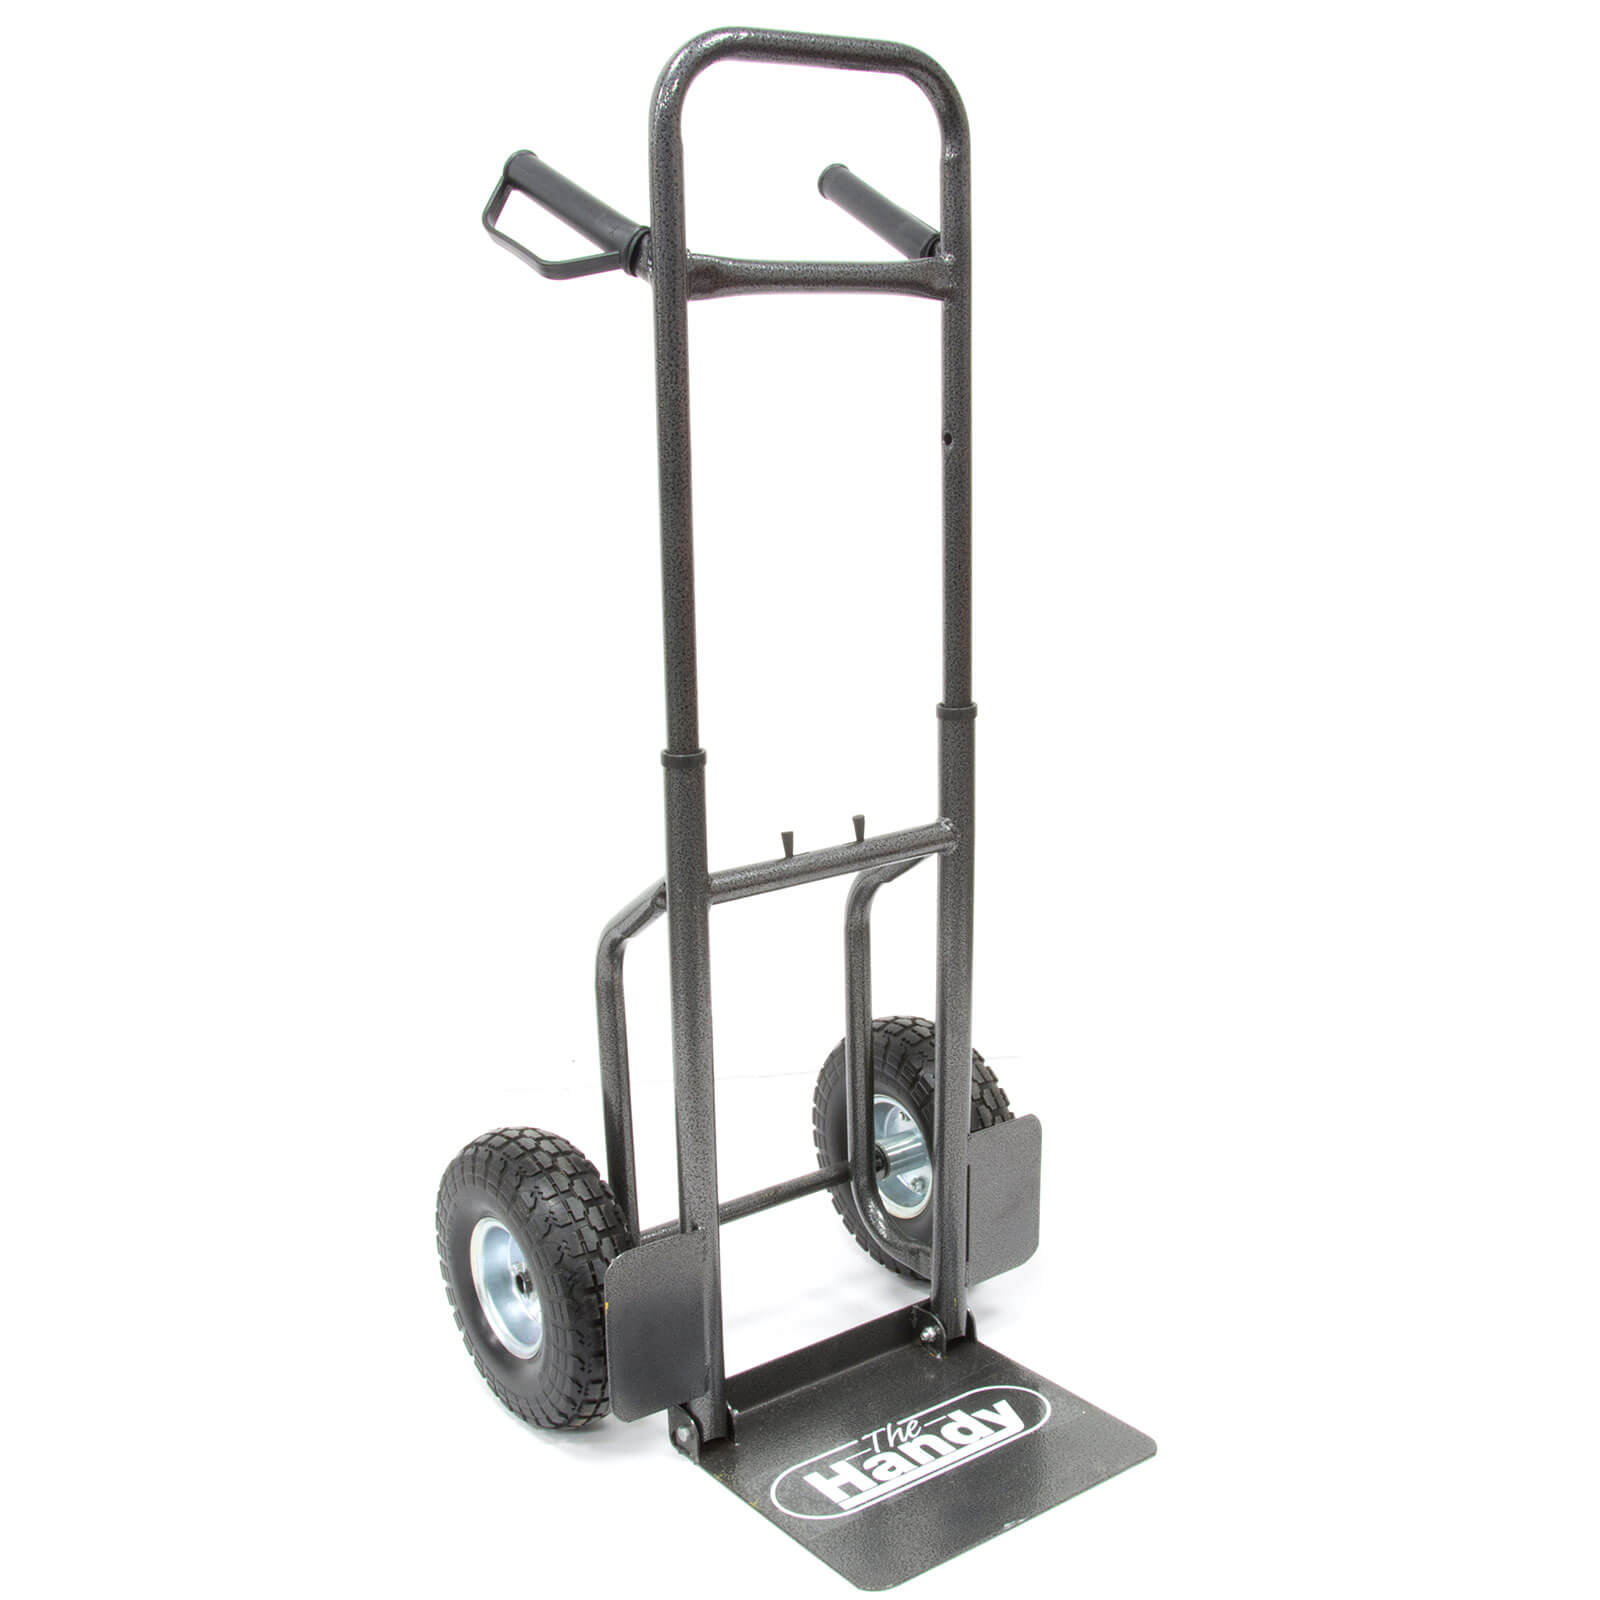 Handy THFST Folding Lift Truck Trolley 200kg